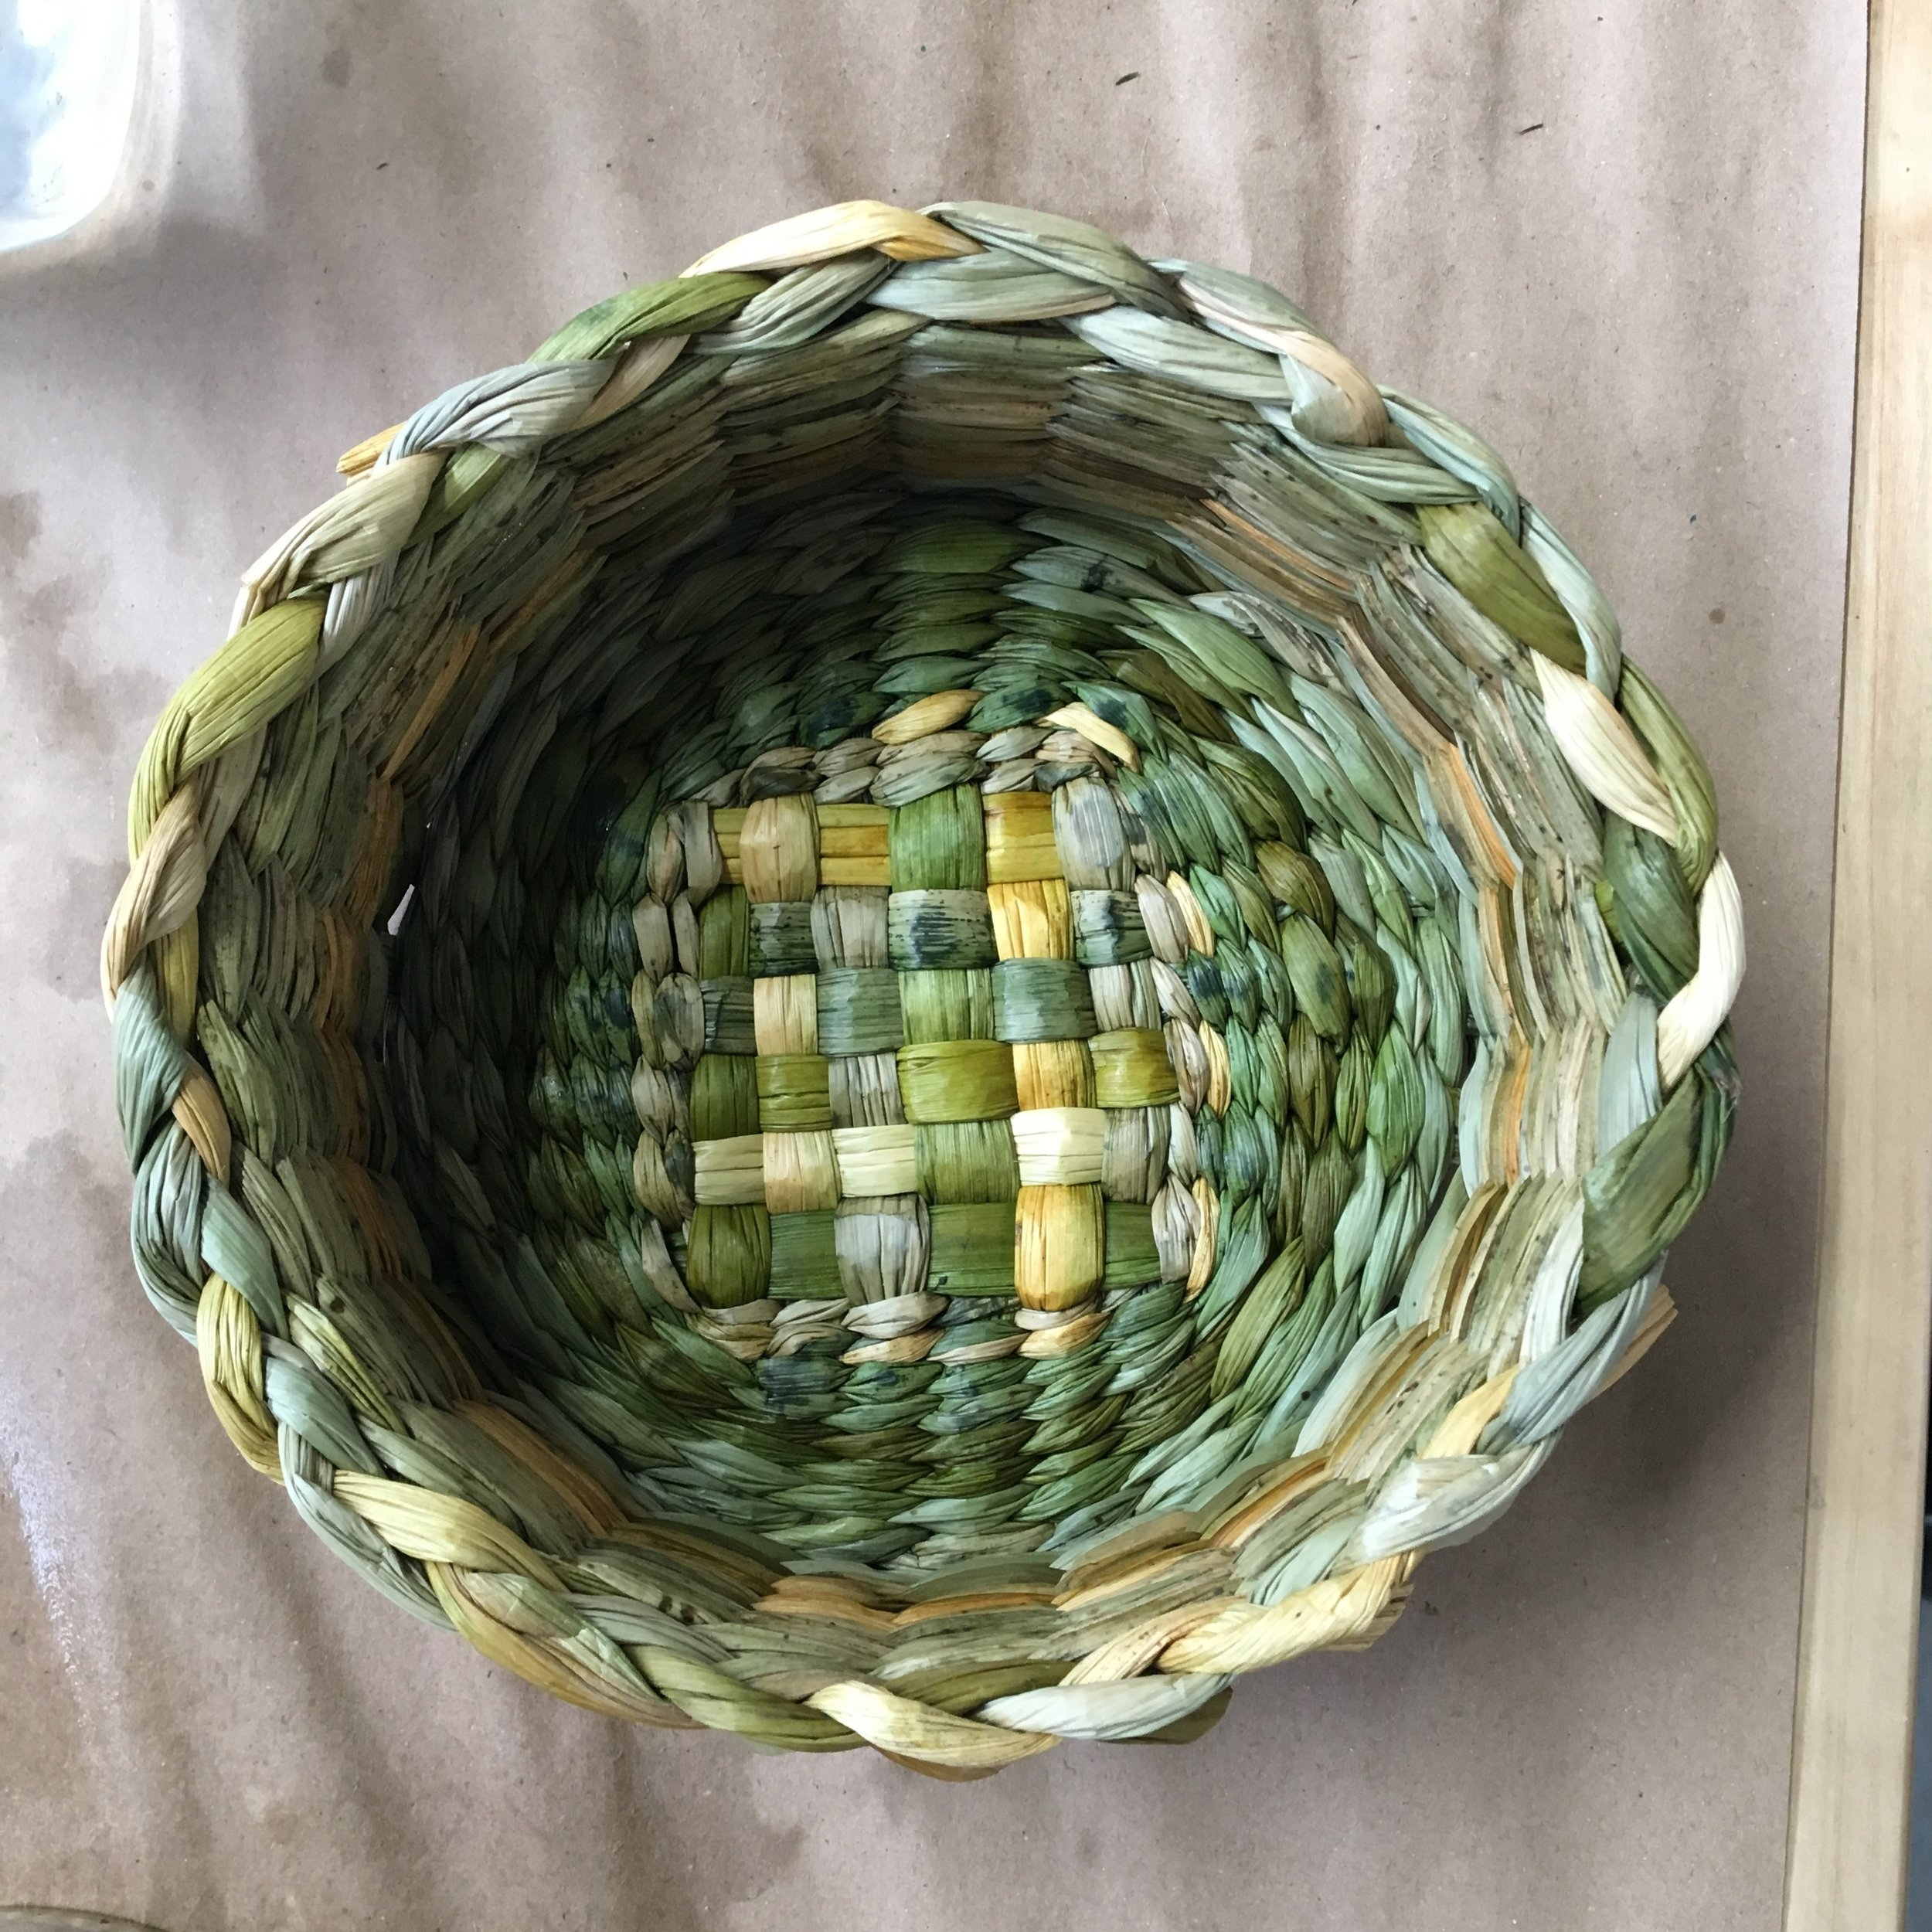 Basketmaking-5.jpg